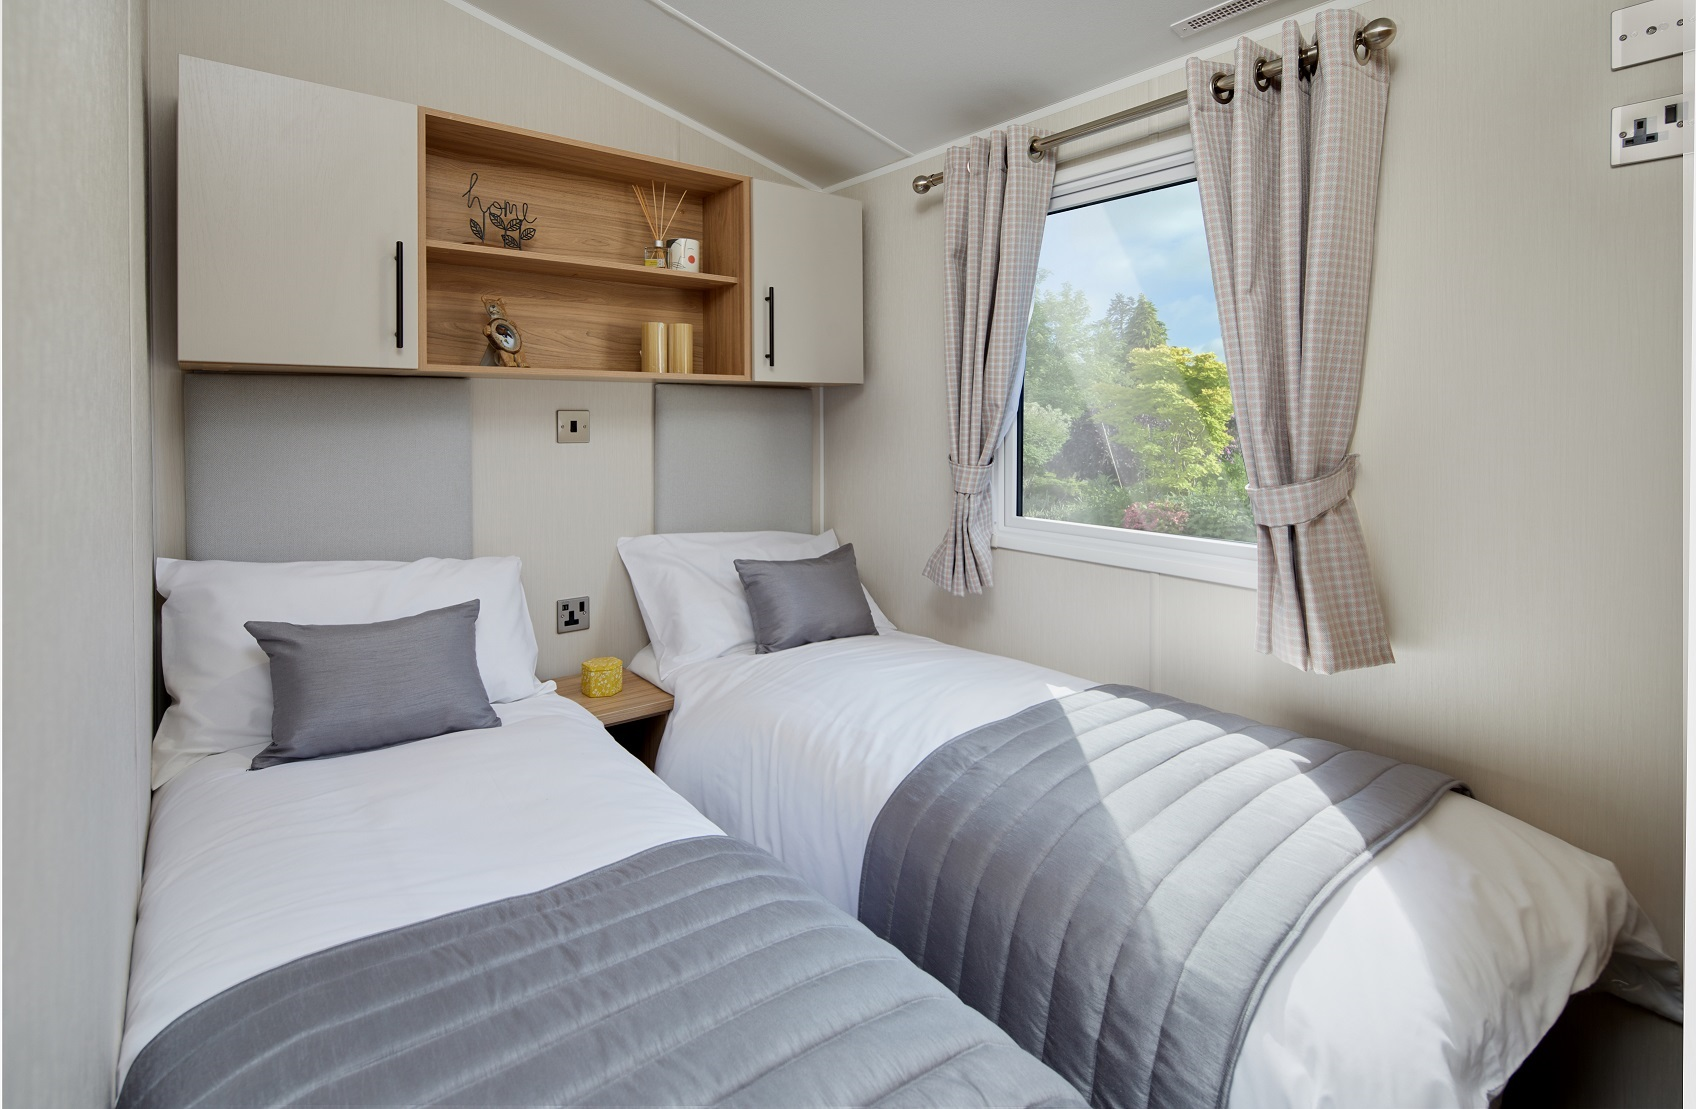 Willerby Manor: New Static Caravans and Holiday Homes for Sale, Available to Order Image 2